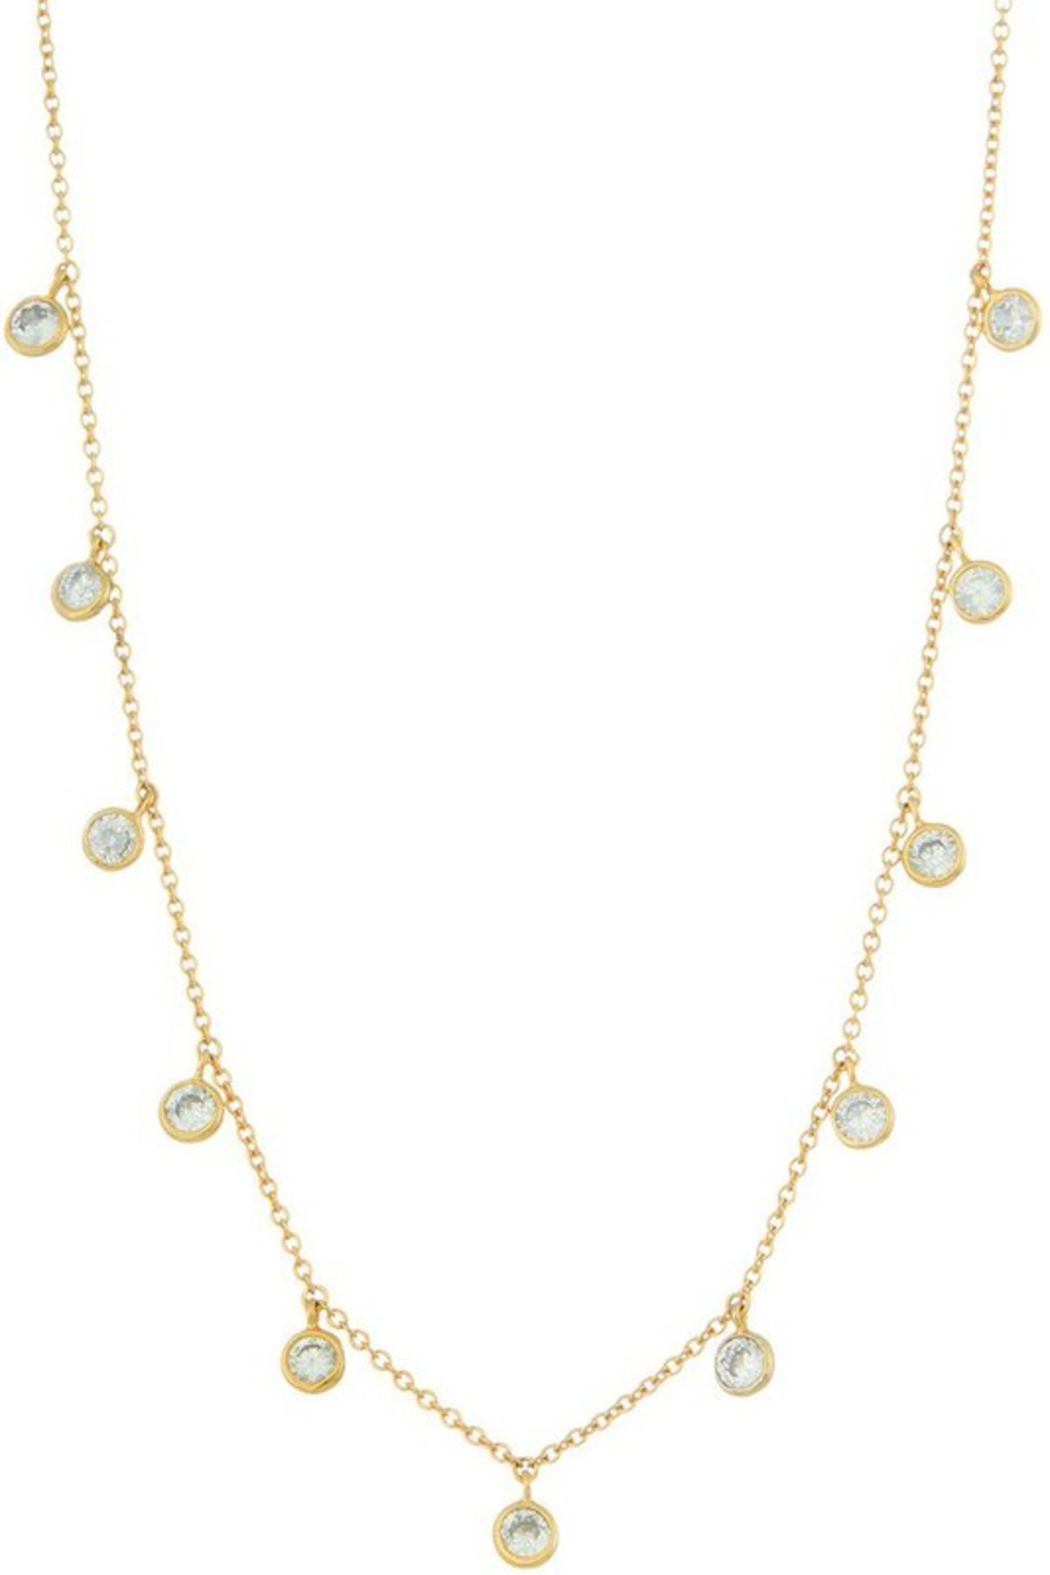 FAME ACCESORIES Dainty Bezel CZ Necklace - Main Image